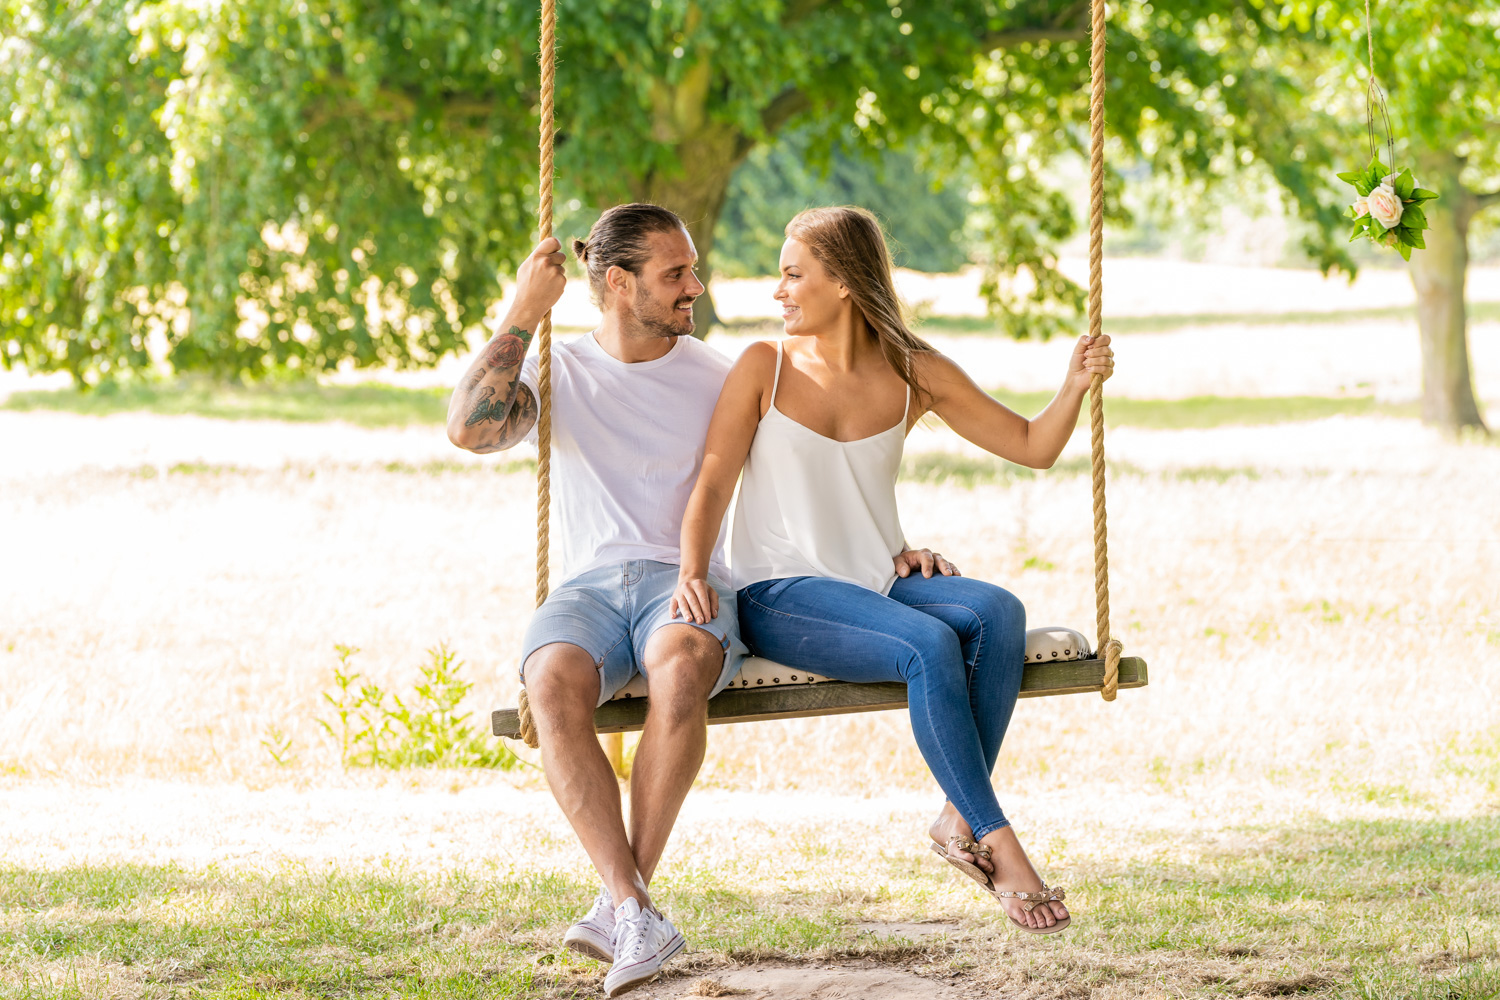 Pre wed couple having fun and enjoying their engagement shoot as the play around on a swing in a Surrey park